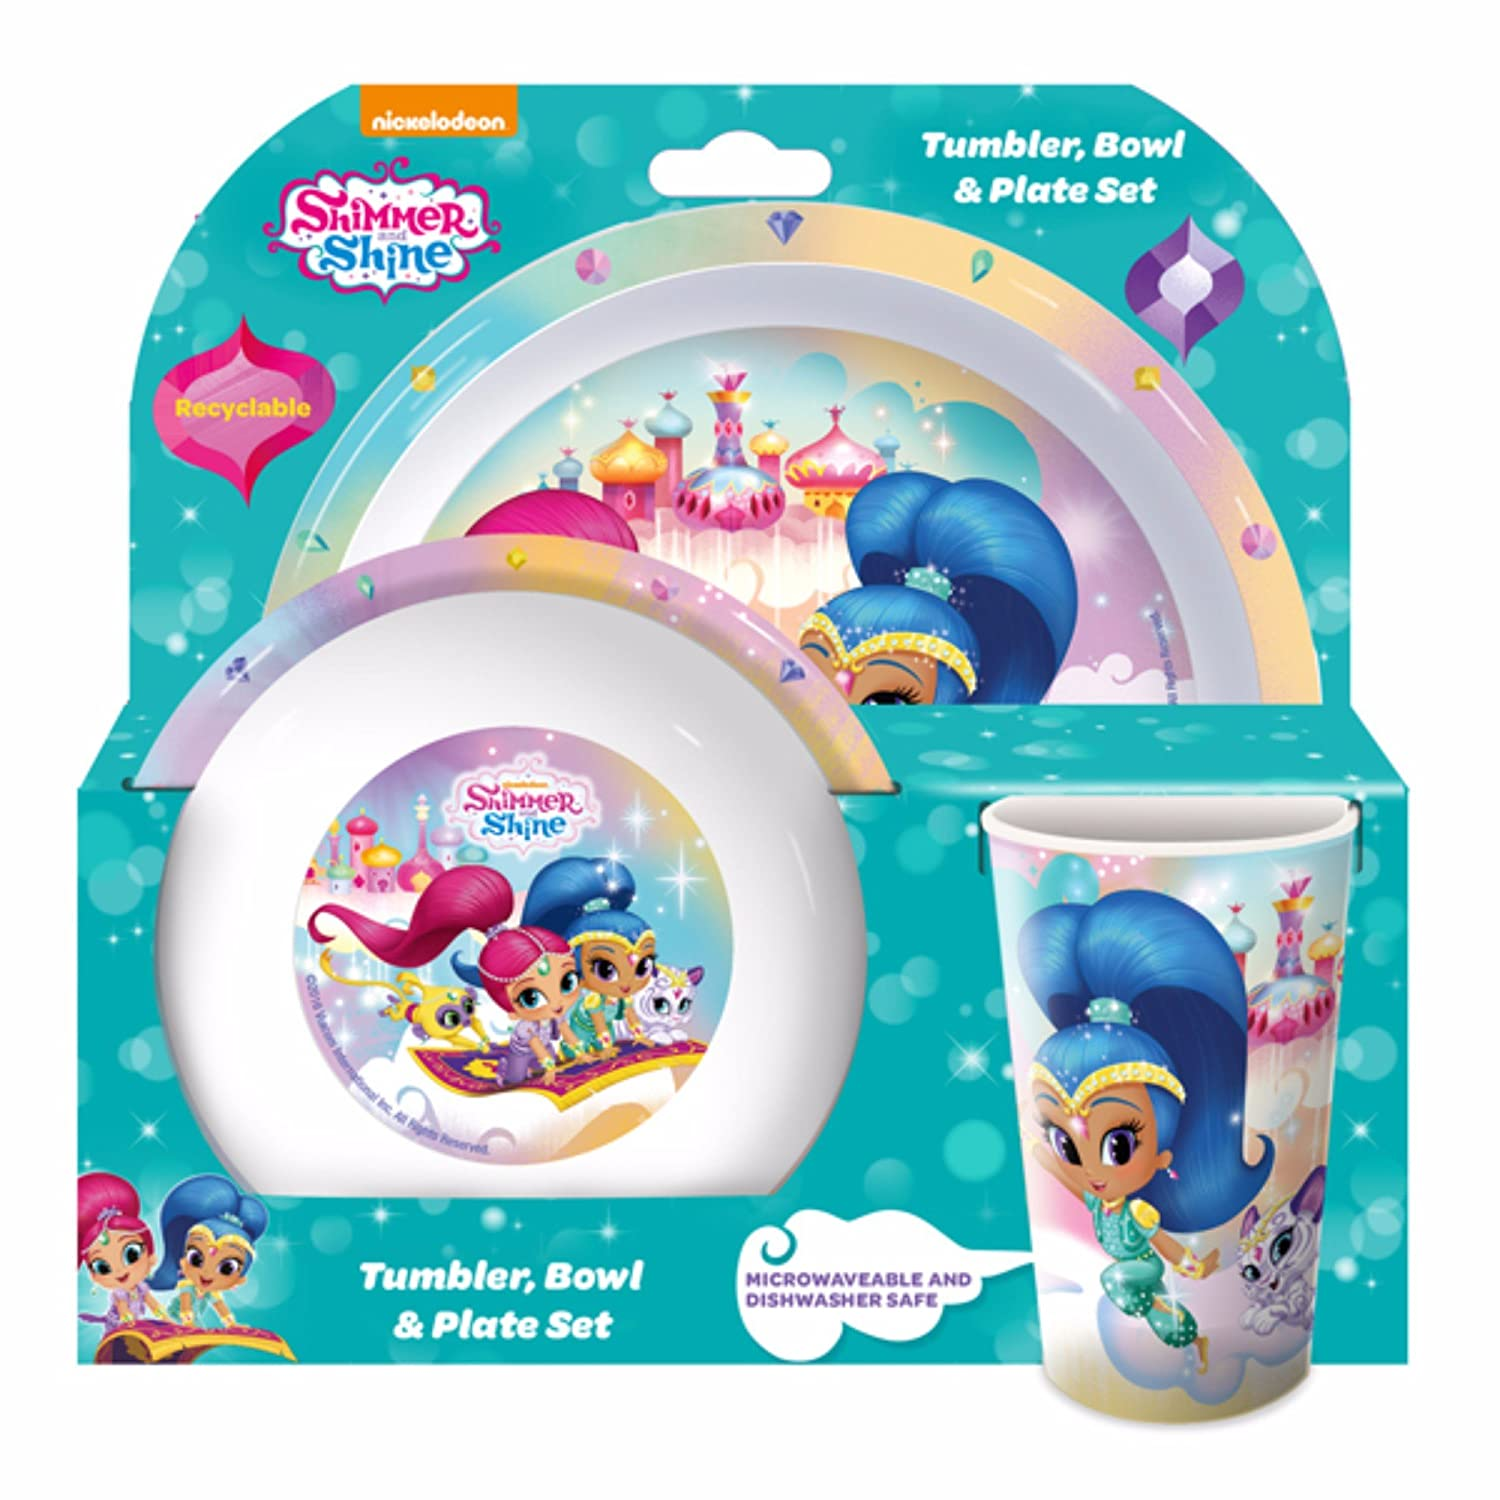 Shimmer And Shine Childrens/Girls Official 3 Piece Dinner Set (One Size) (Multicolored) UTSG9745_1